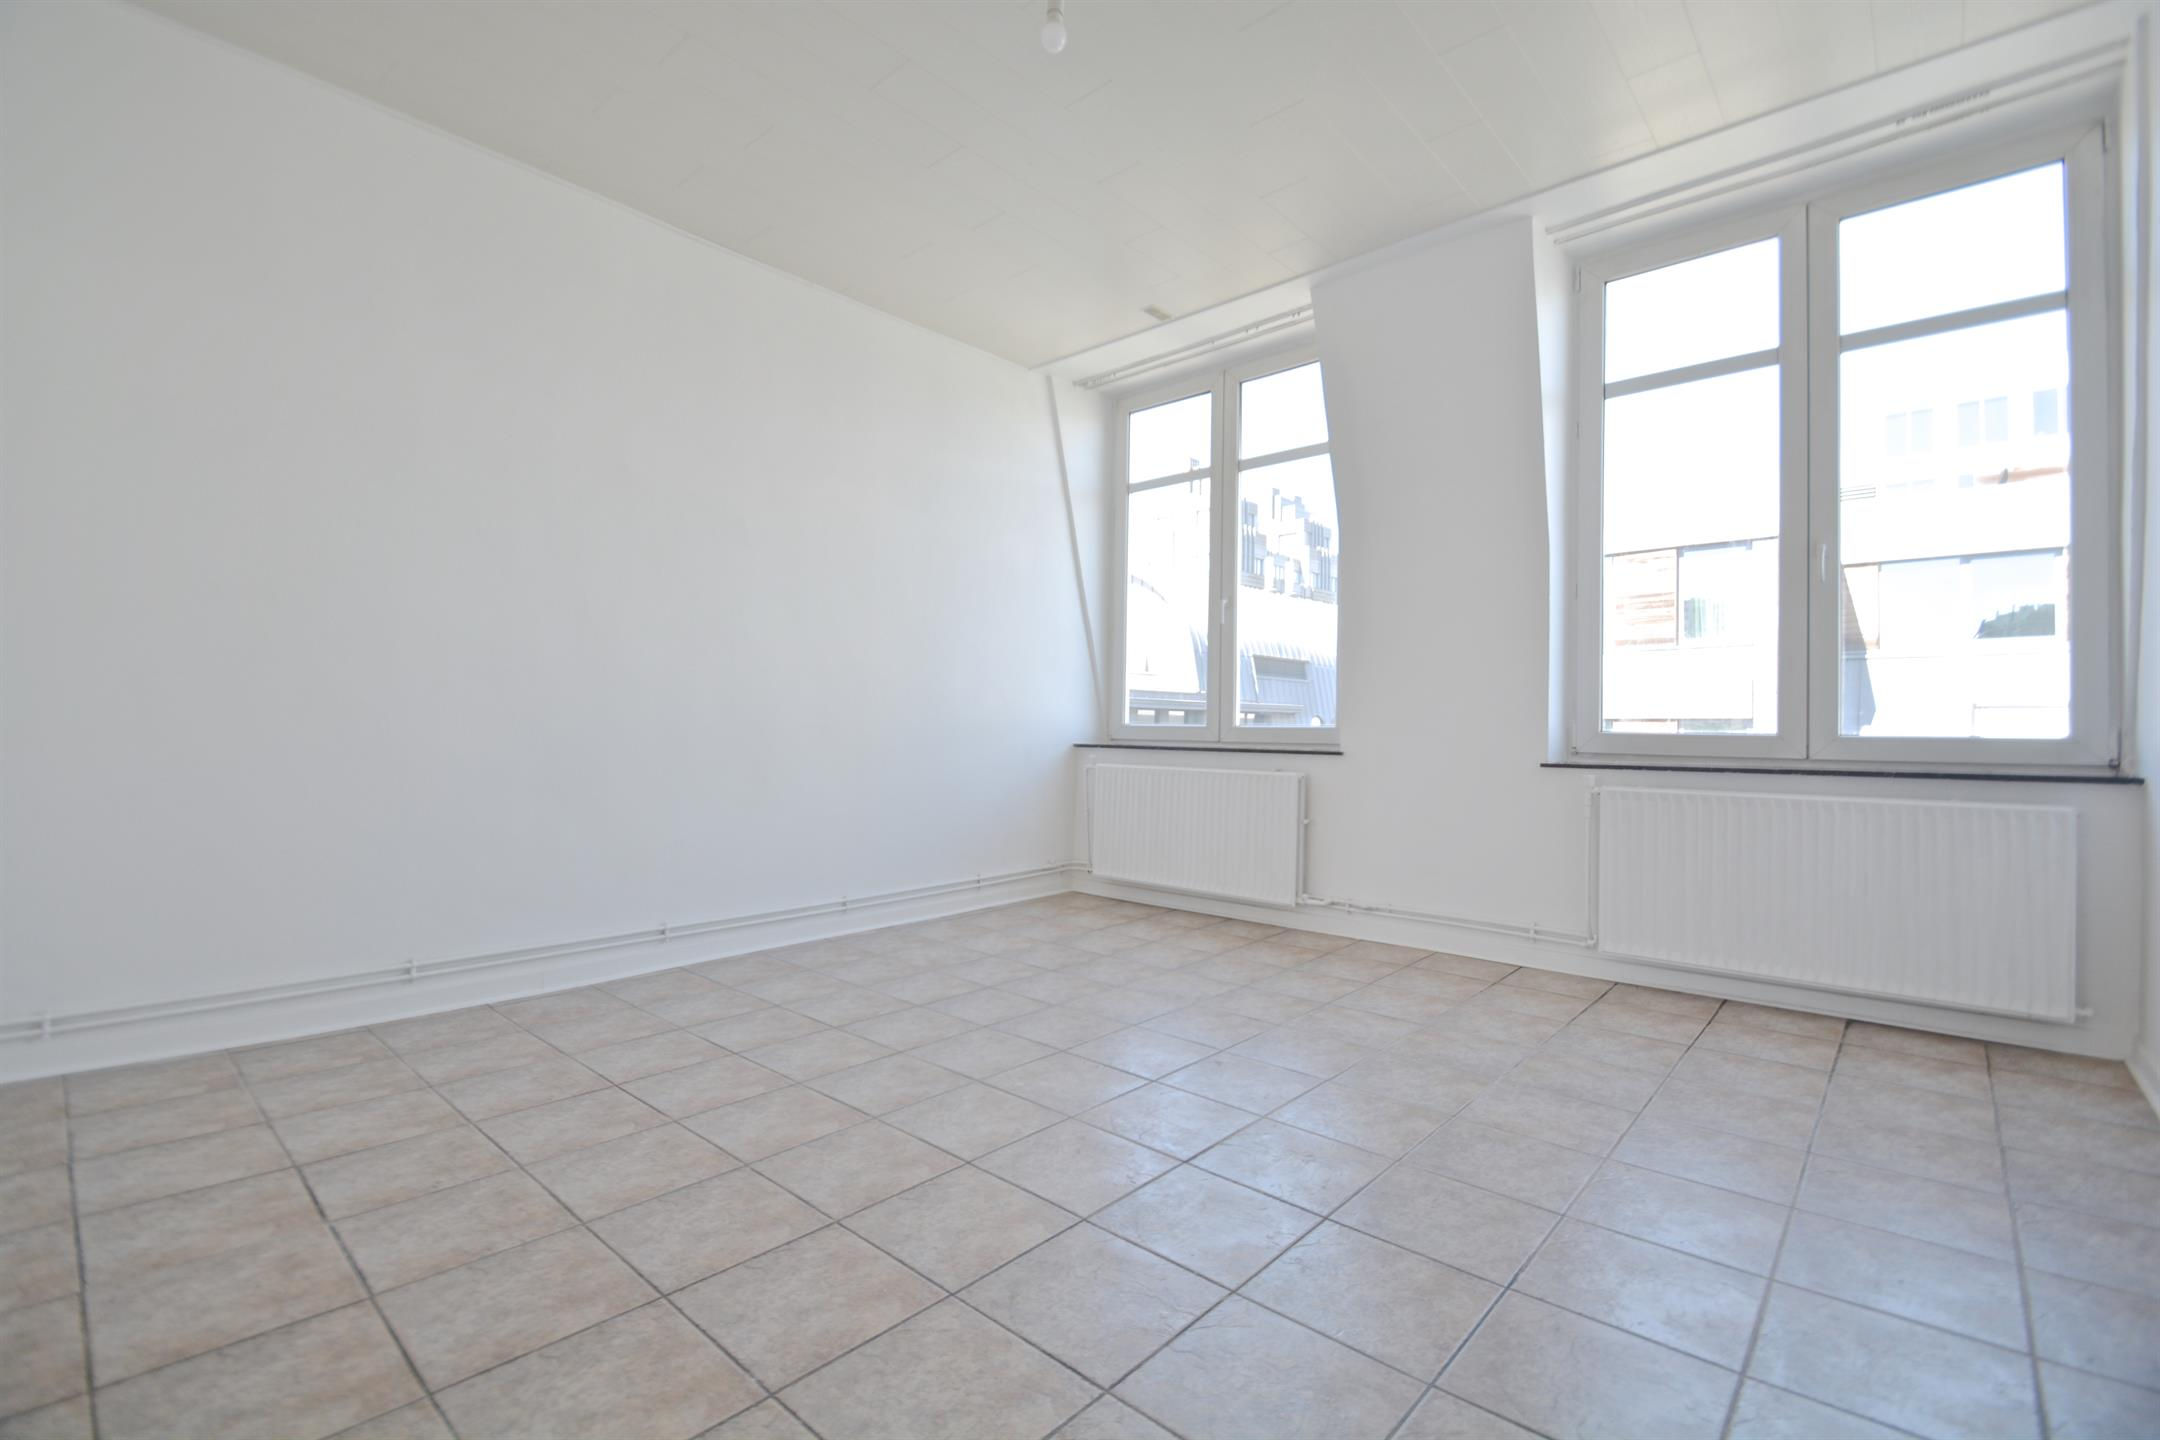 Appartement - Saint-Gilles - #4118613-2